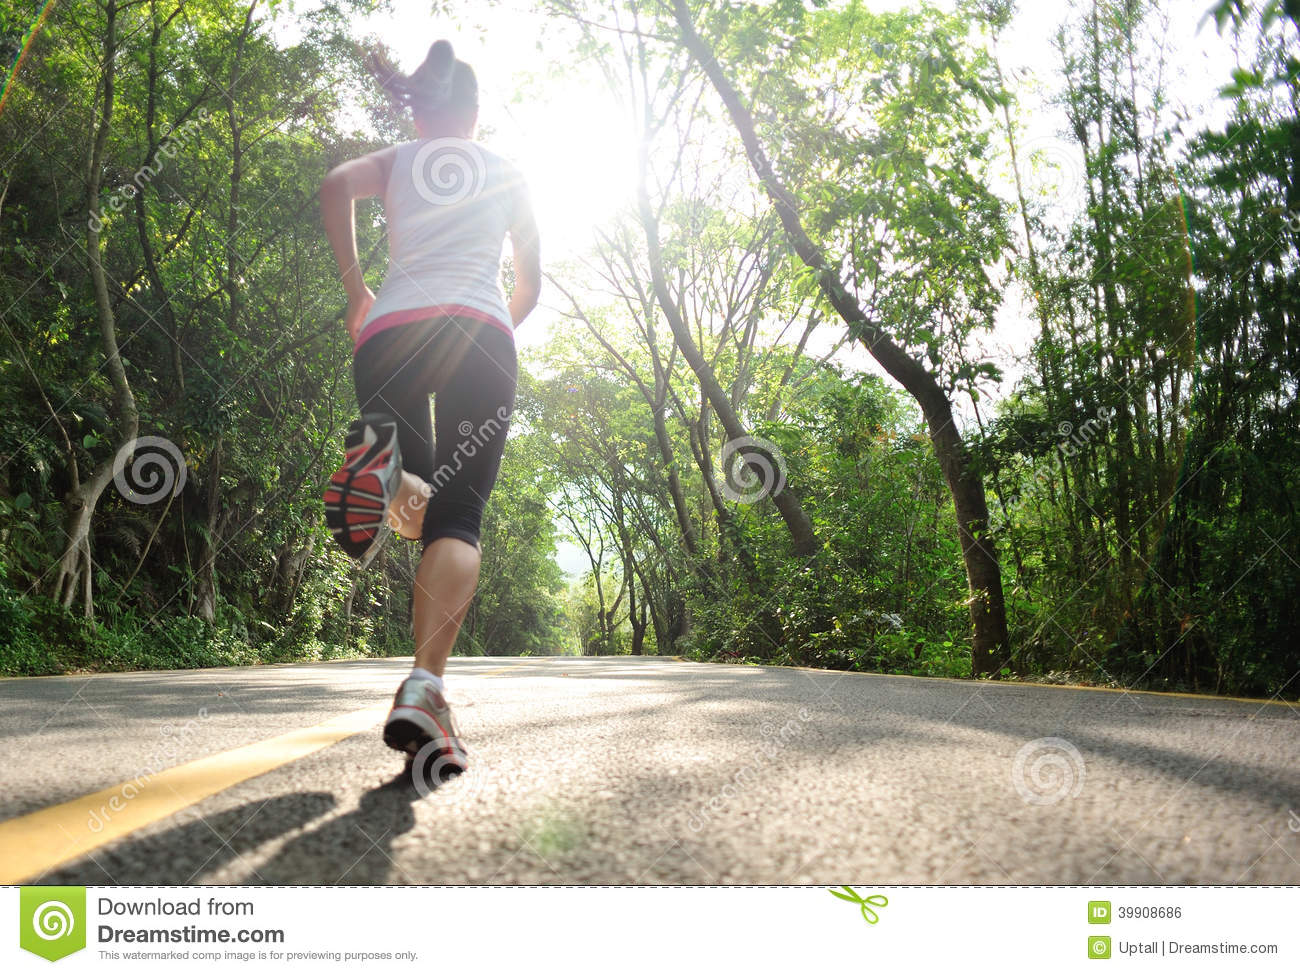 Download Healthy Lifestyle Fitness Sports Woman Running Stock Photo - Image of chinese, back: 39908686